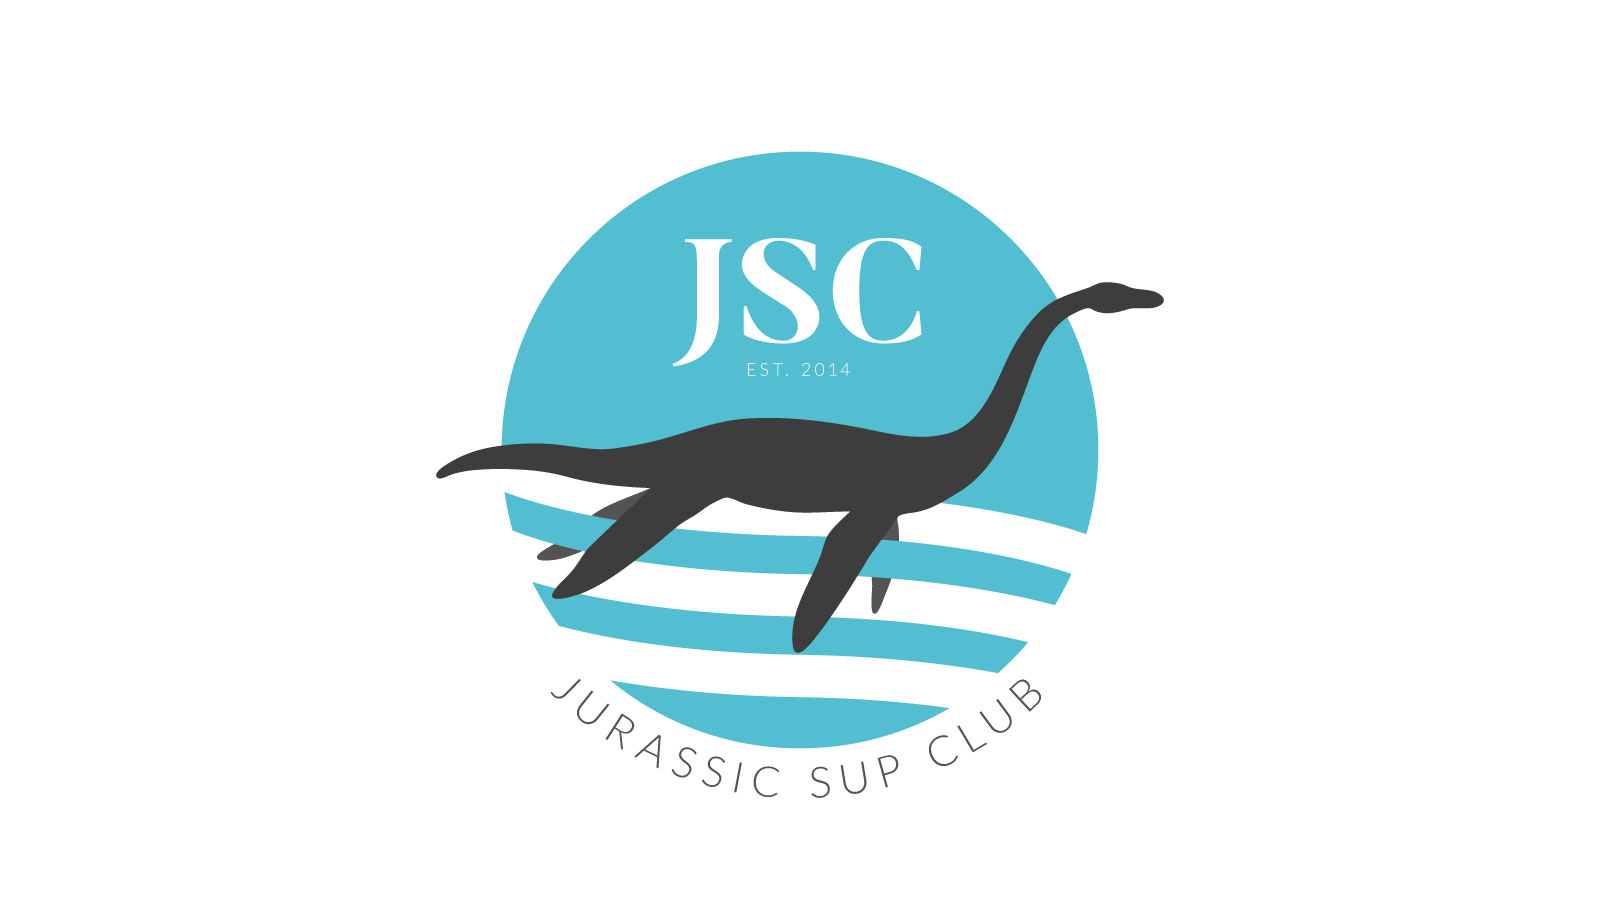 work-jurassic-sup-club-logo